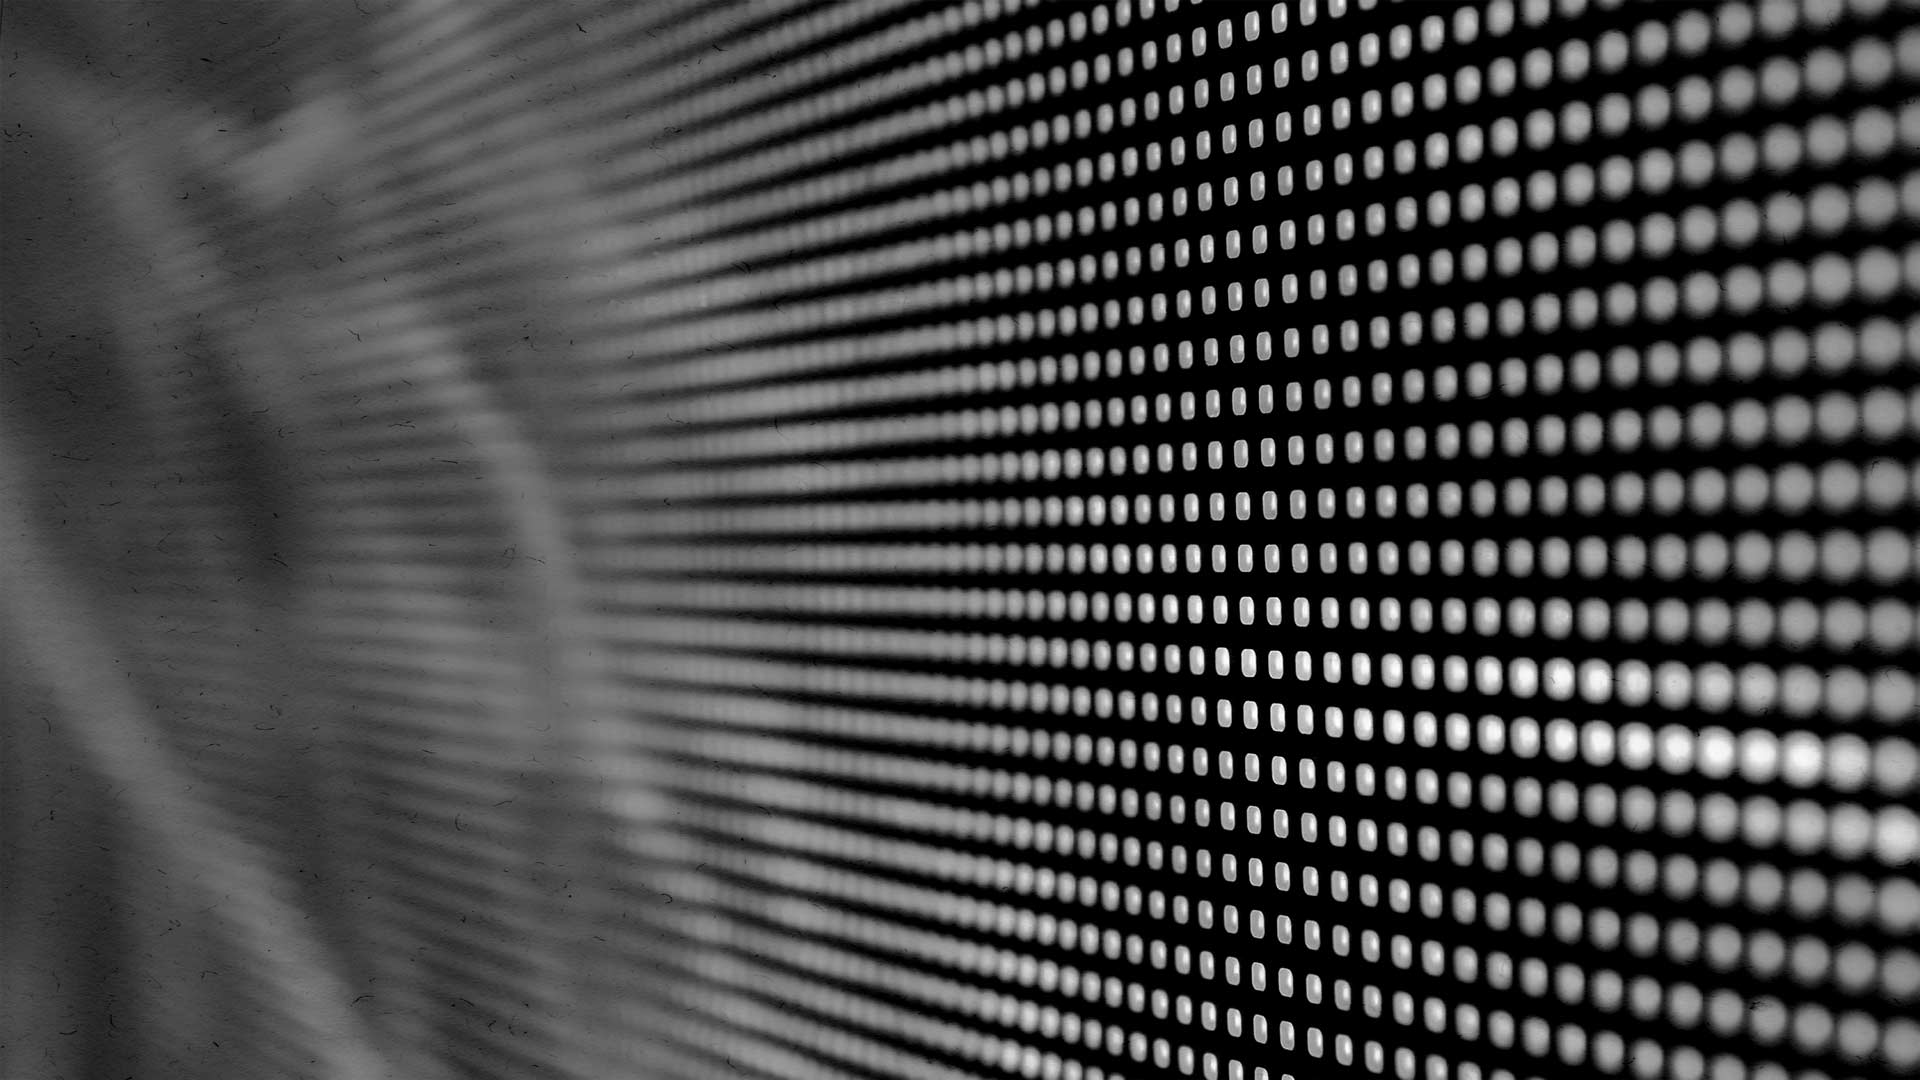 Black and White Lo-Res LED Panel Background.